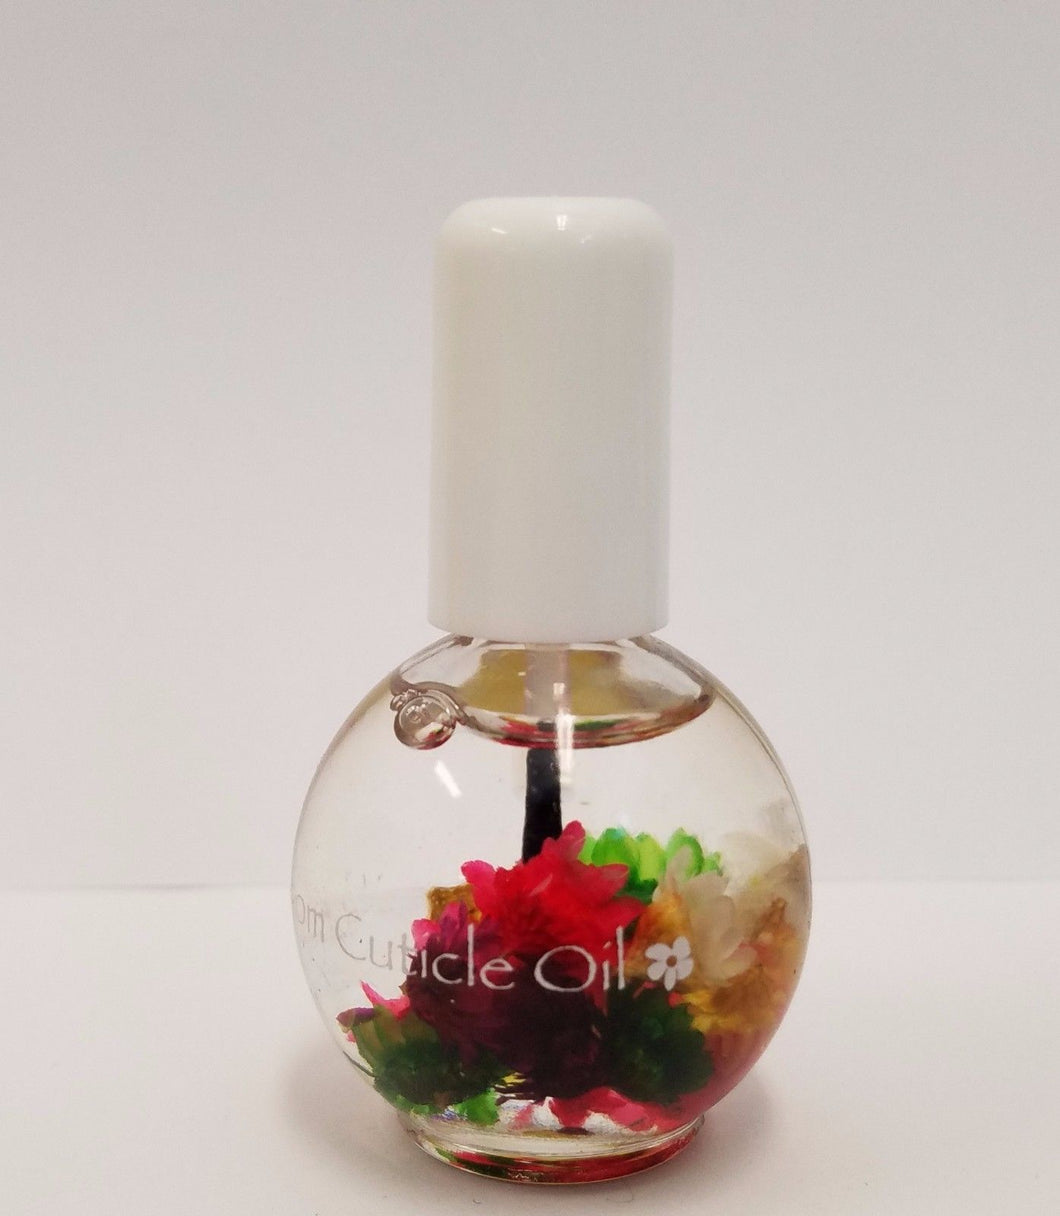 Blossom Cuticle Oil with Real Flowers 0.5oz - SPRING BOUQUET